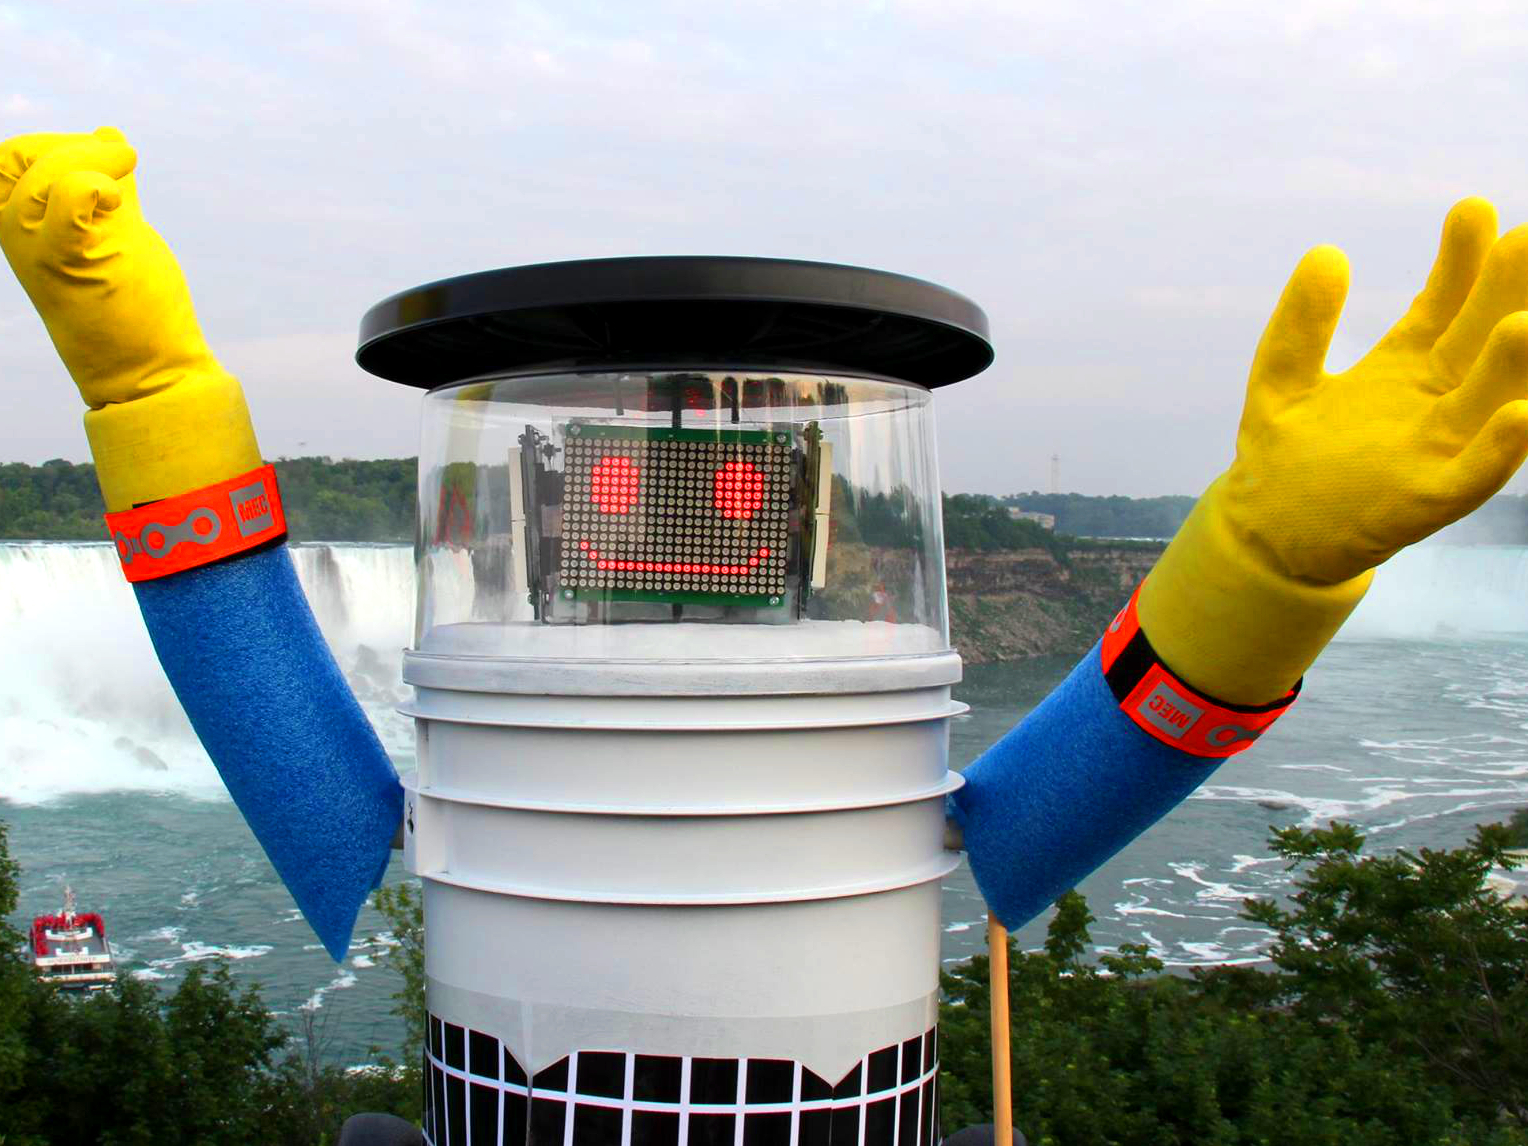 HitchBOT Gets Mugged in 'City of Brotherly Love' En Route to San Francisco